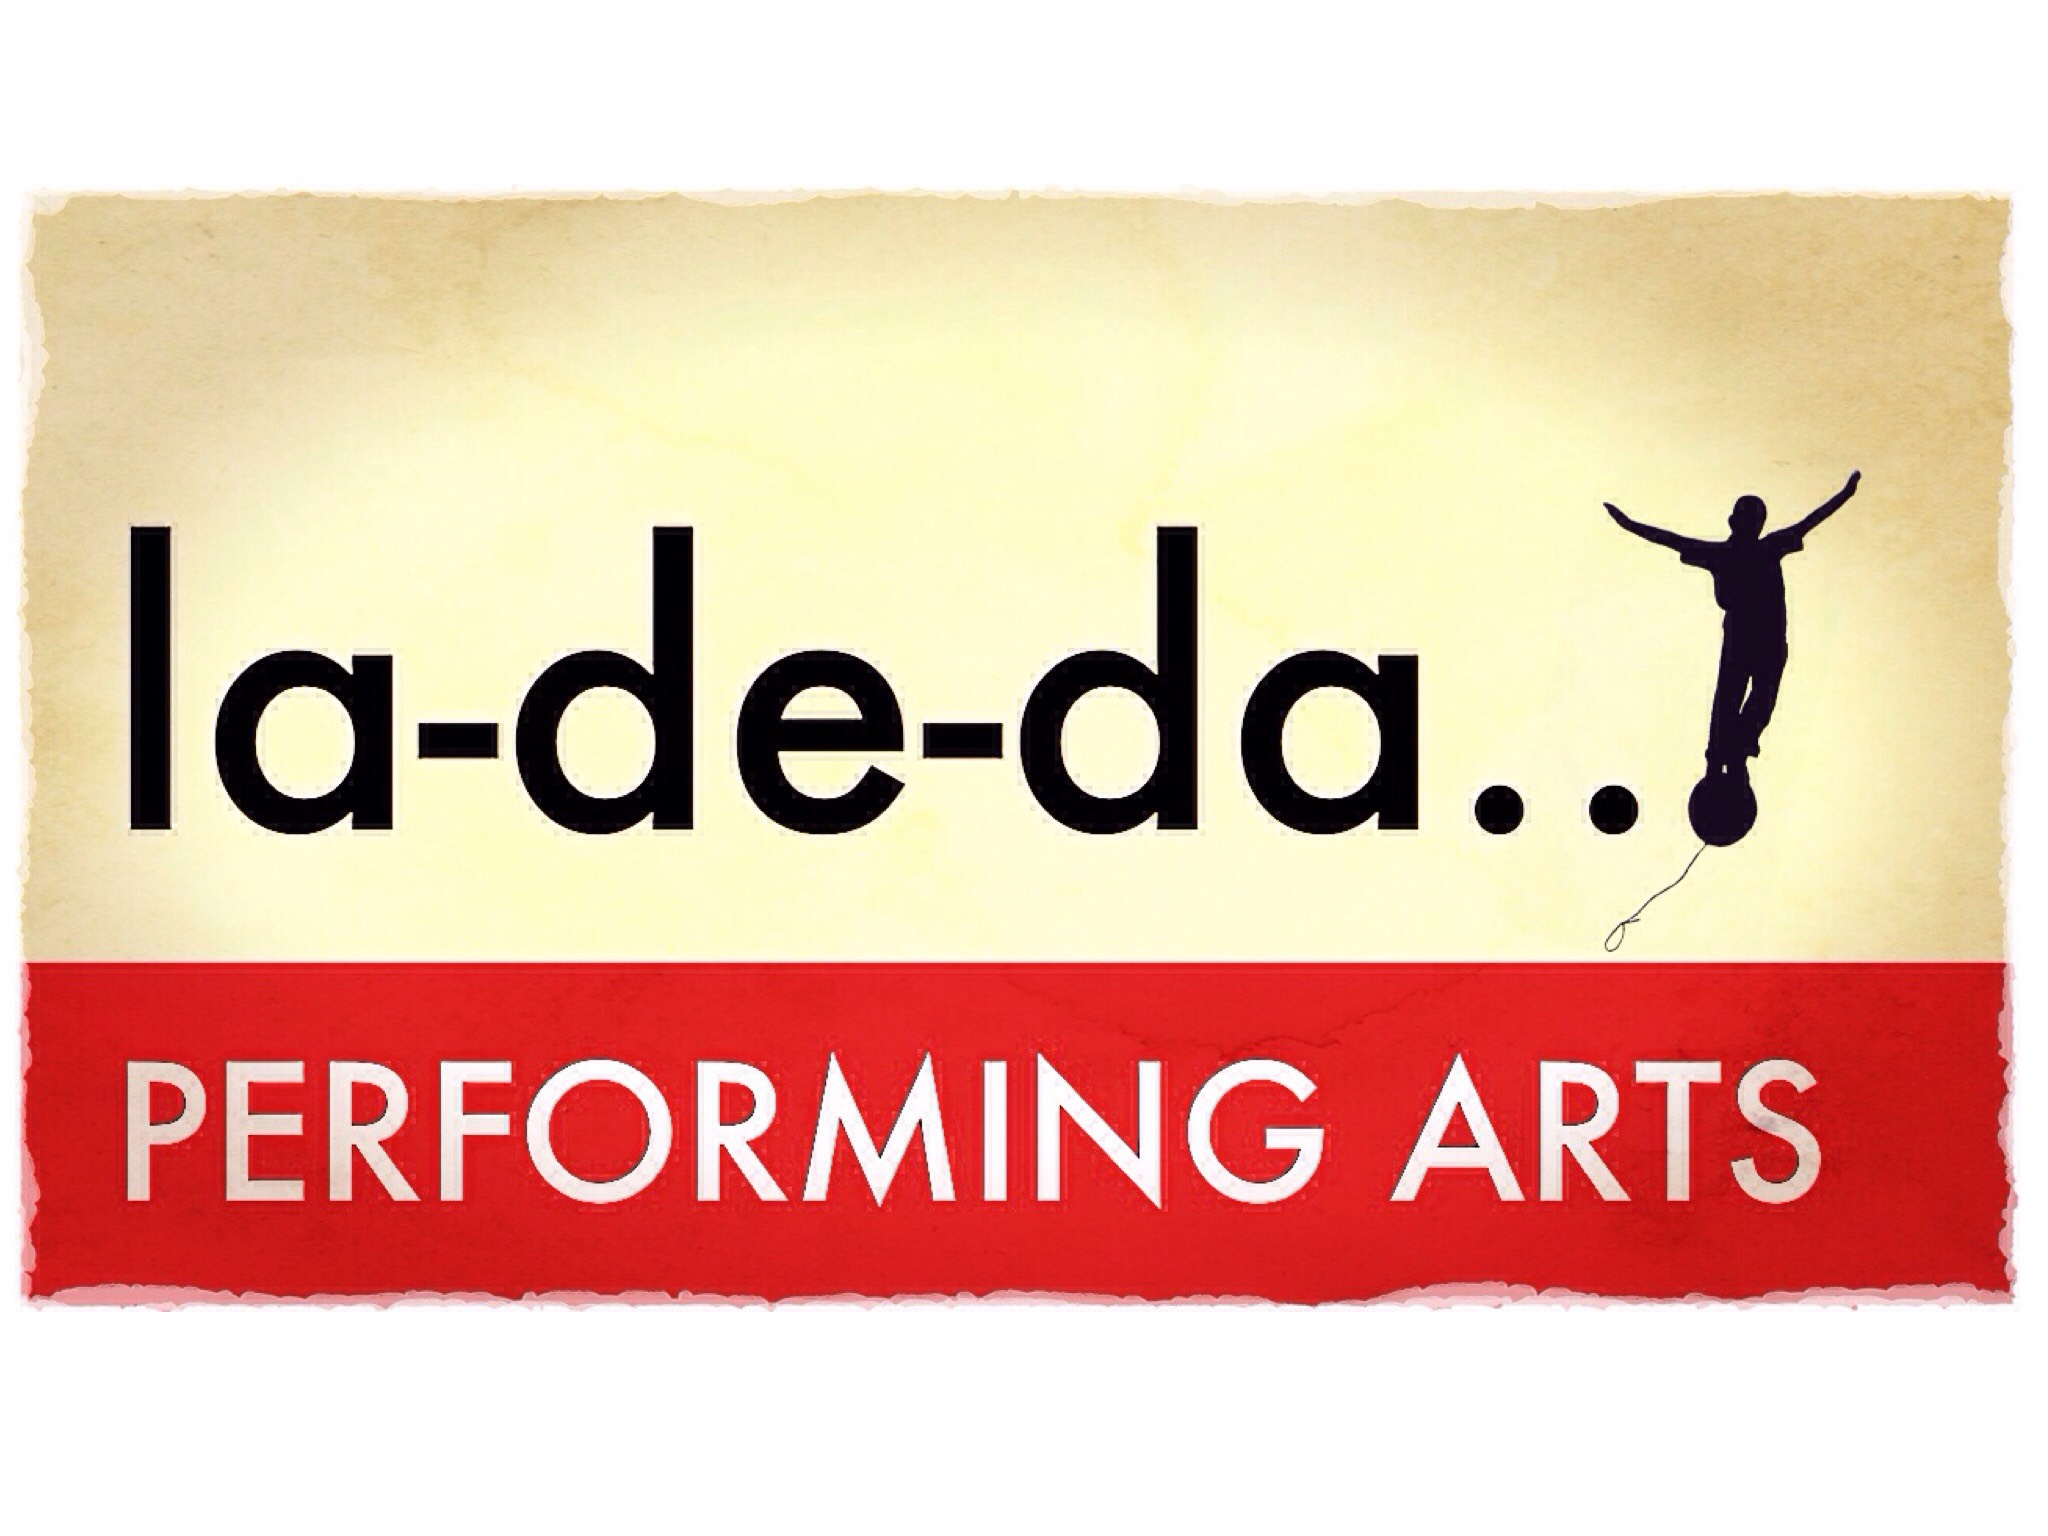 For the third year, la-de-da...performing arts is partnering with the Fort Collins Fringe Festival to present our Free Family Fringe. FFF is presented on Saturday morning of our festival and features free performances, family-oriented activities and food trucks aplenty!